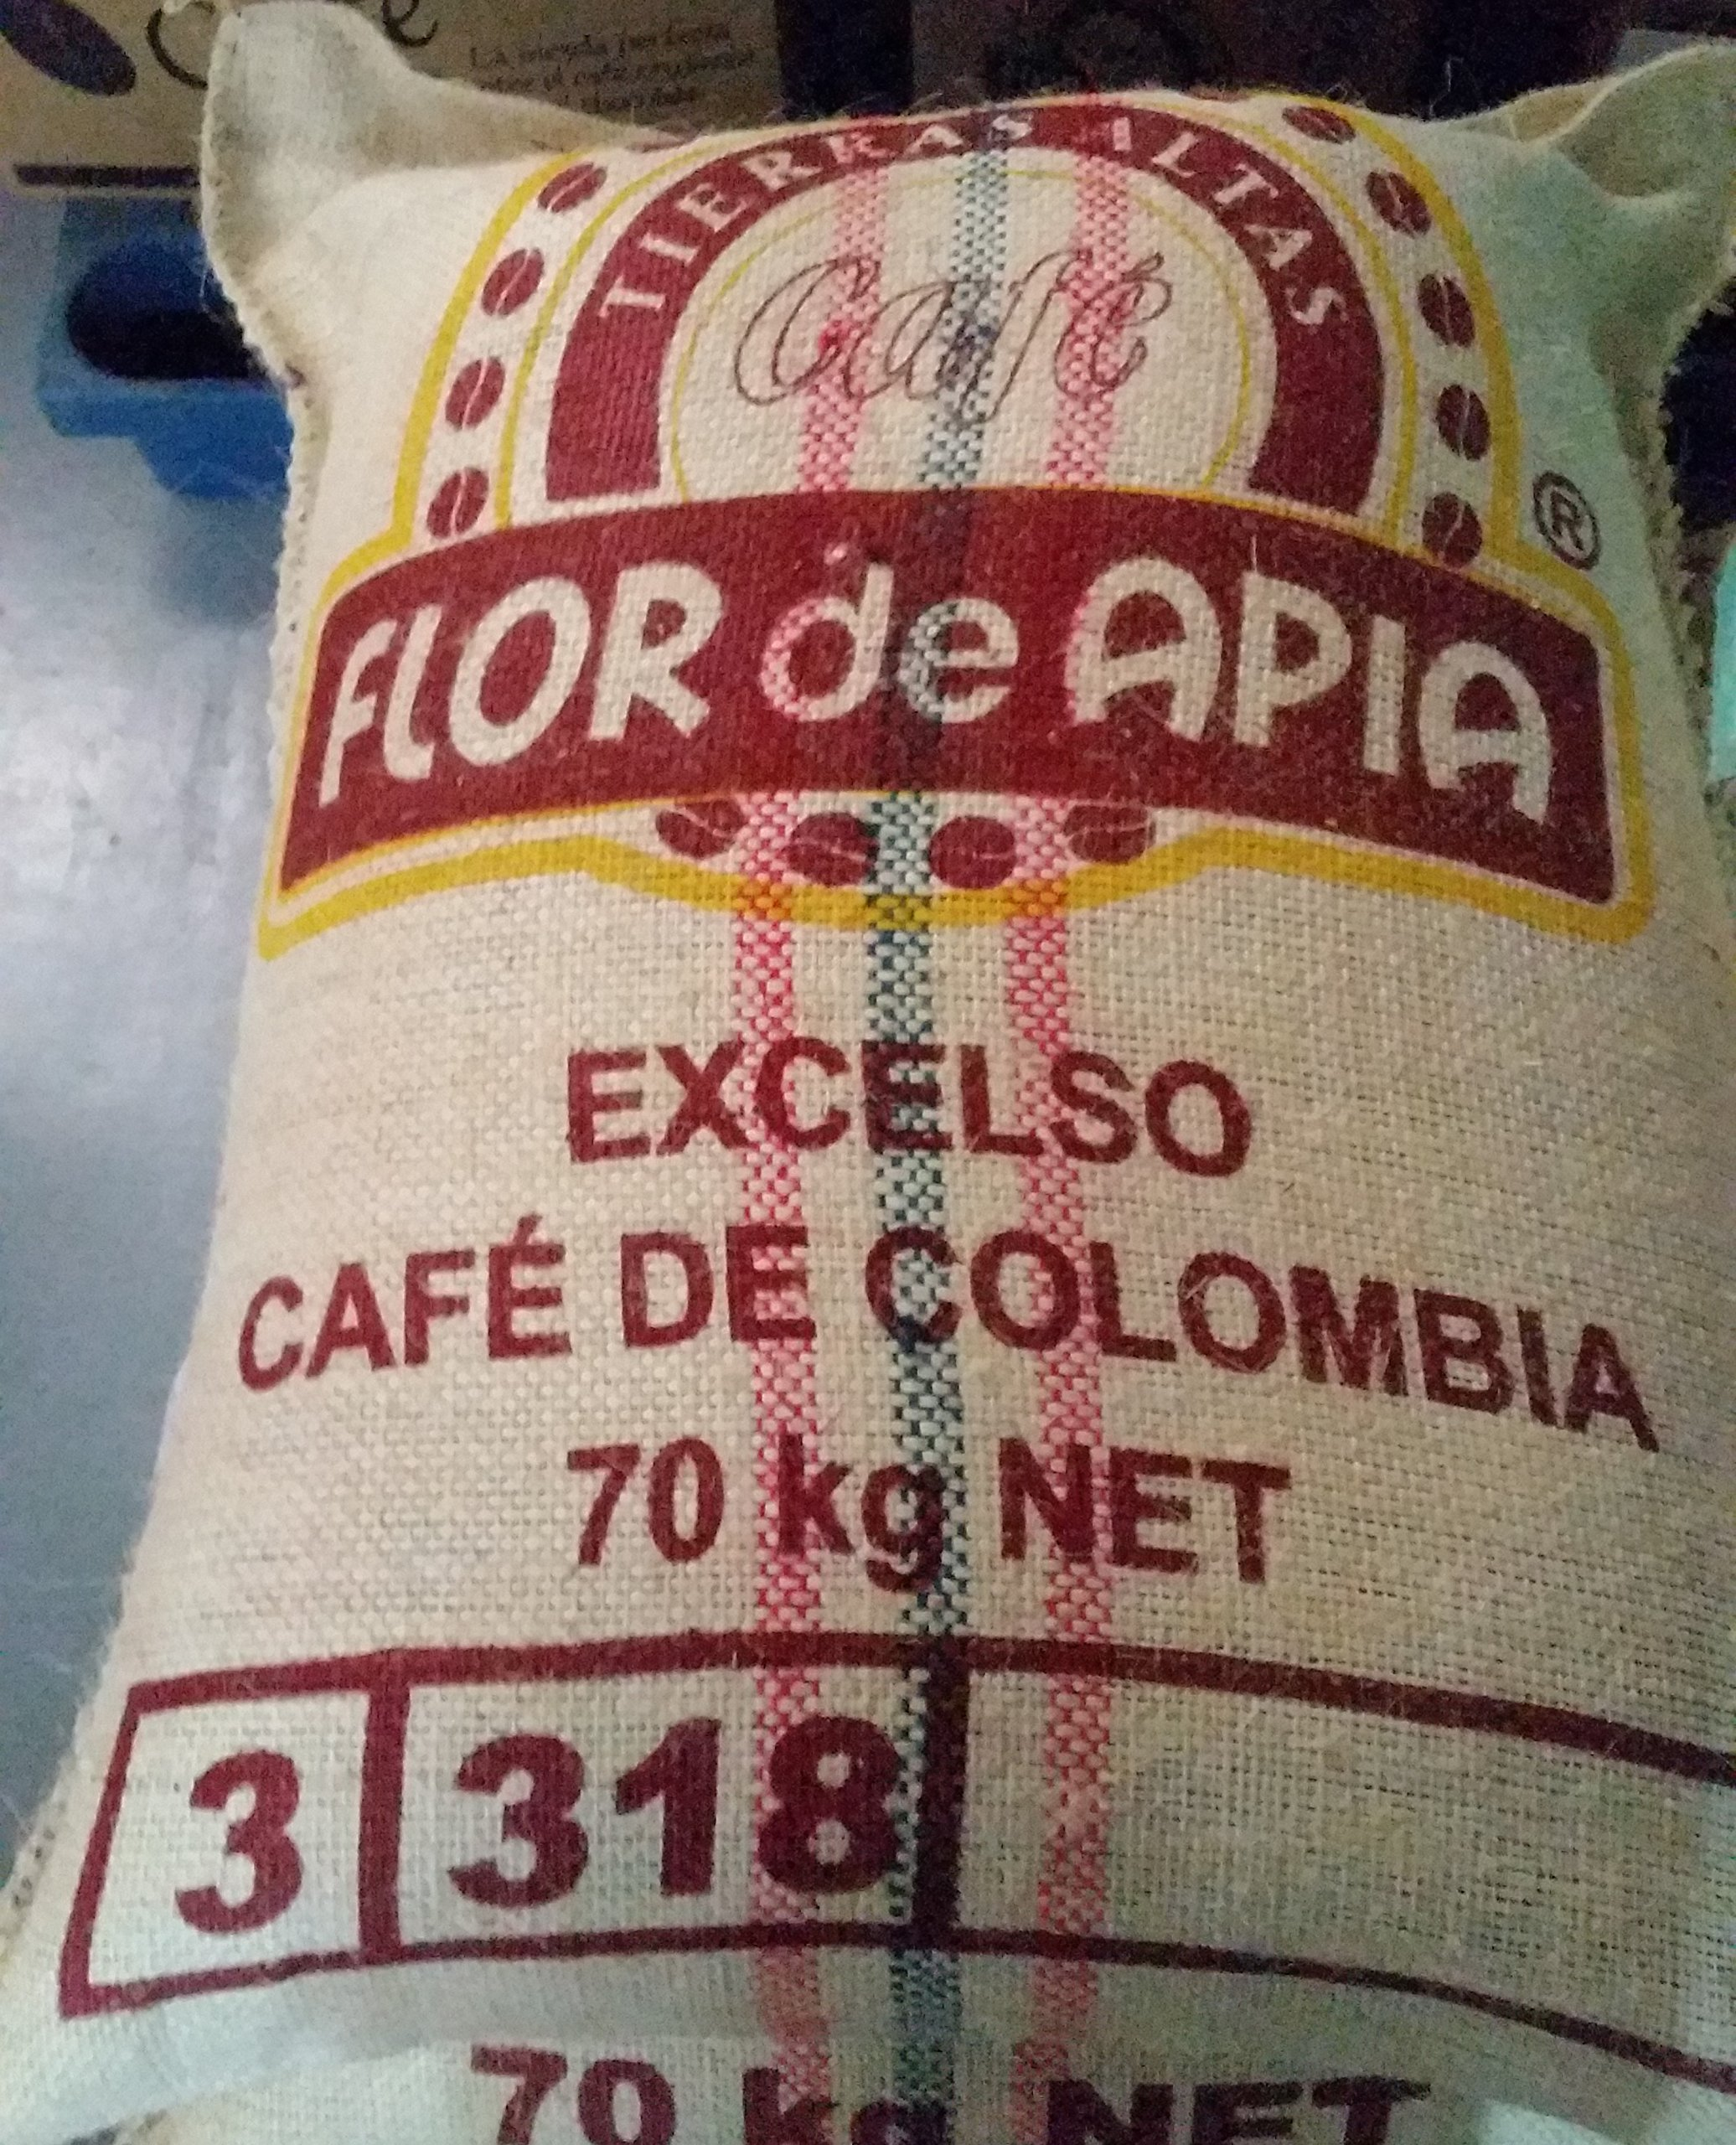 Single Origin Coffee, Colombian Unroasted Coffee Beans Farm Los Pirineos (50 Lb) by Micro Lot # 020-074